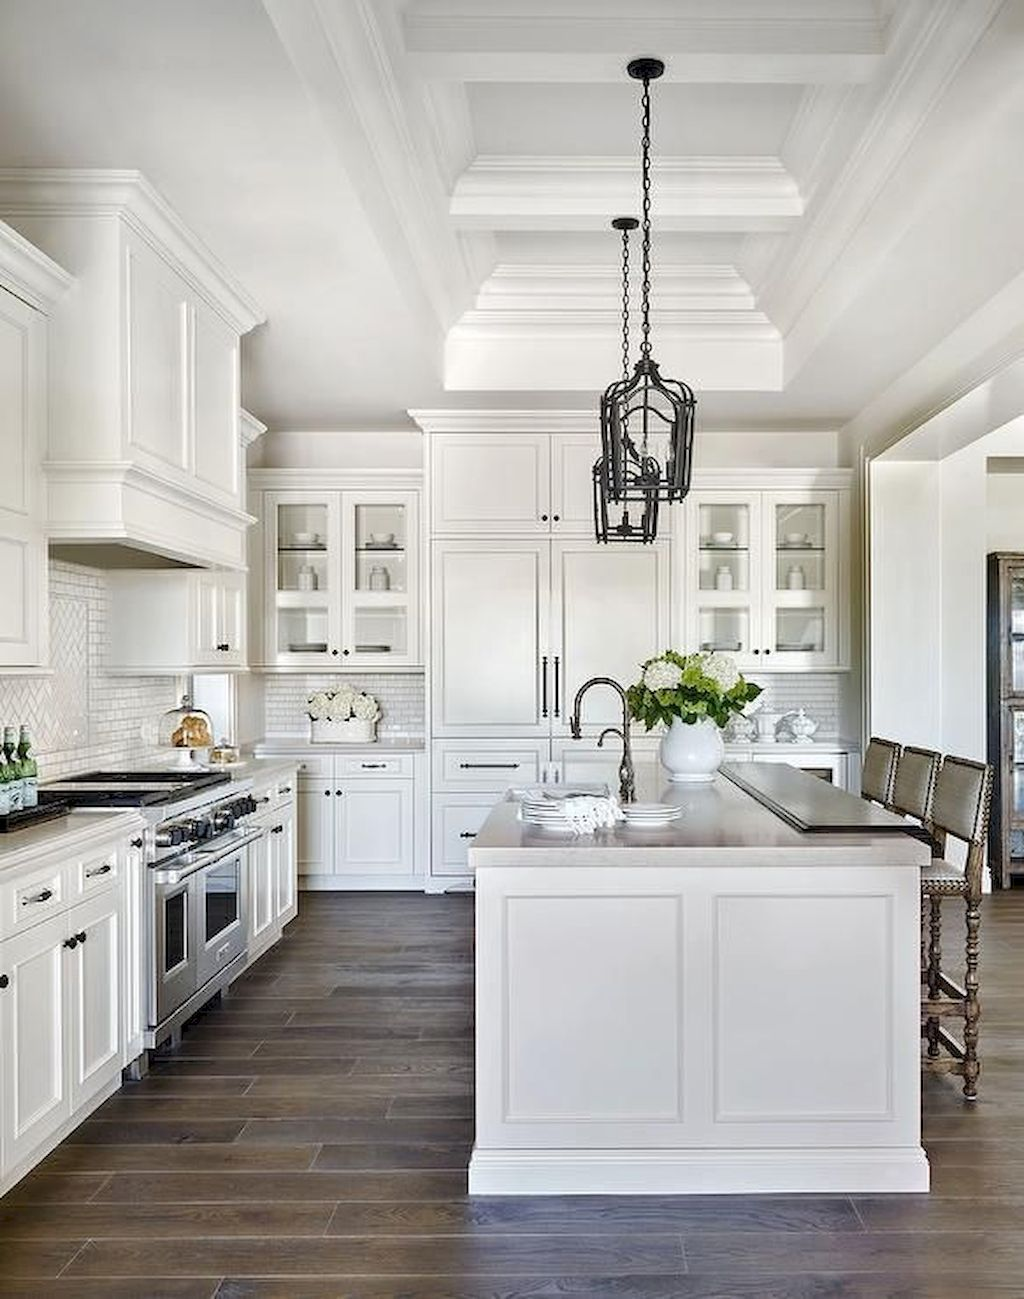 Beautiful white kitchen cabinet decor ideas (51 | Kitchen cabinets ...